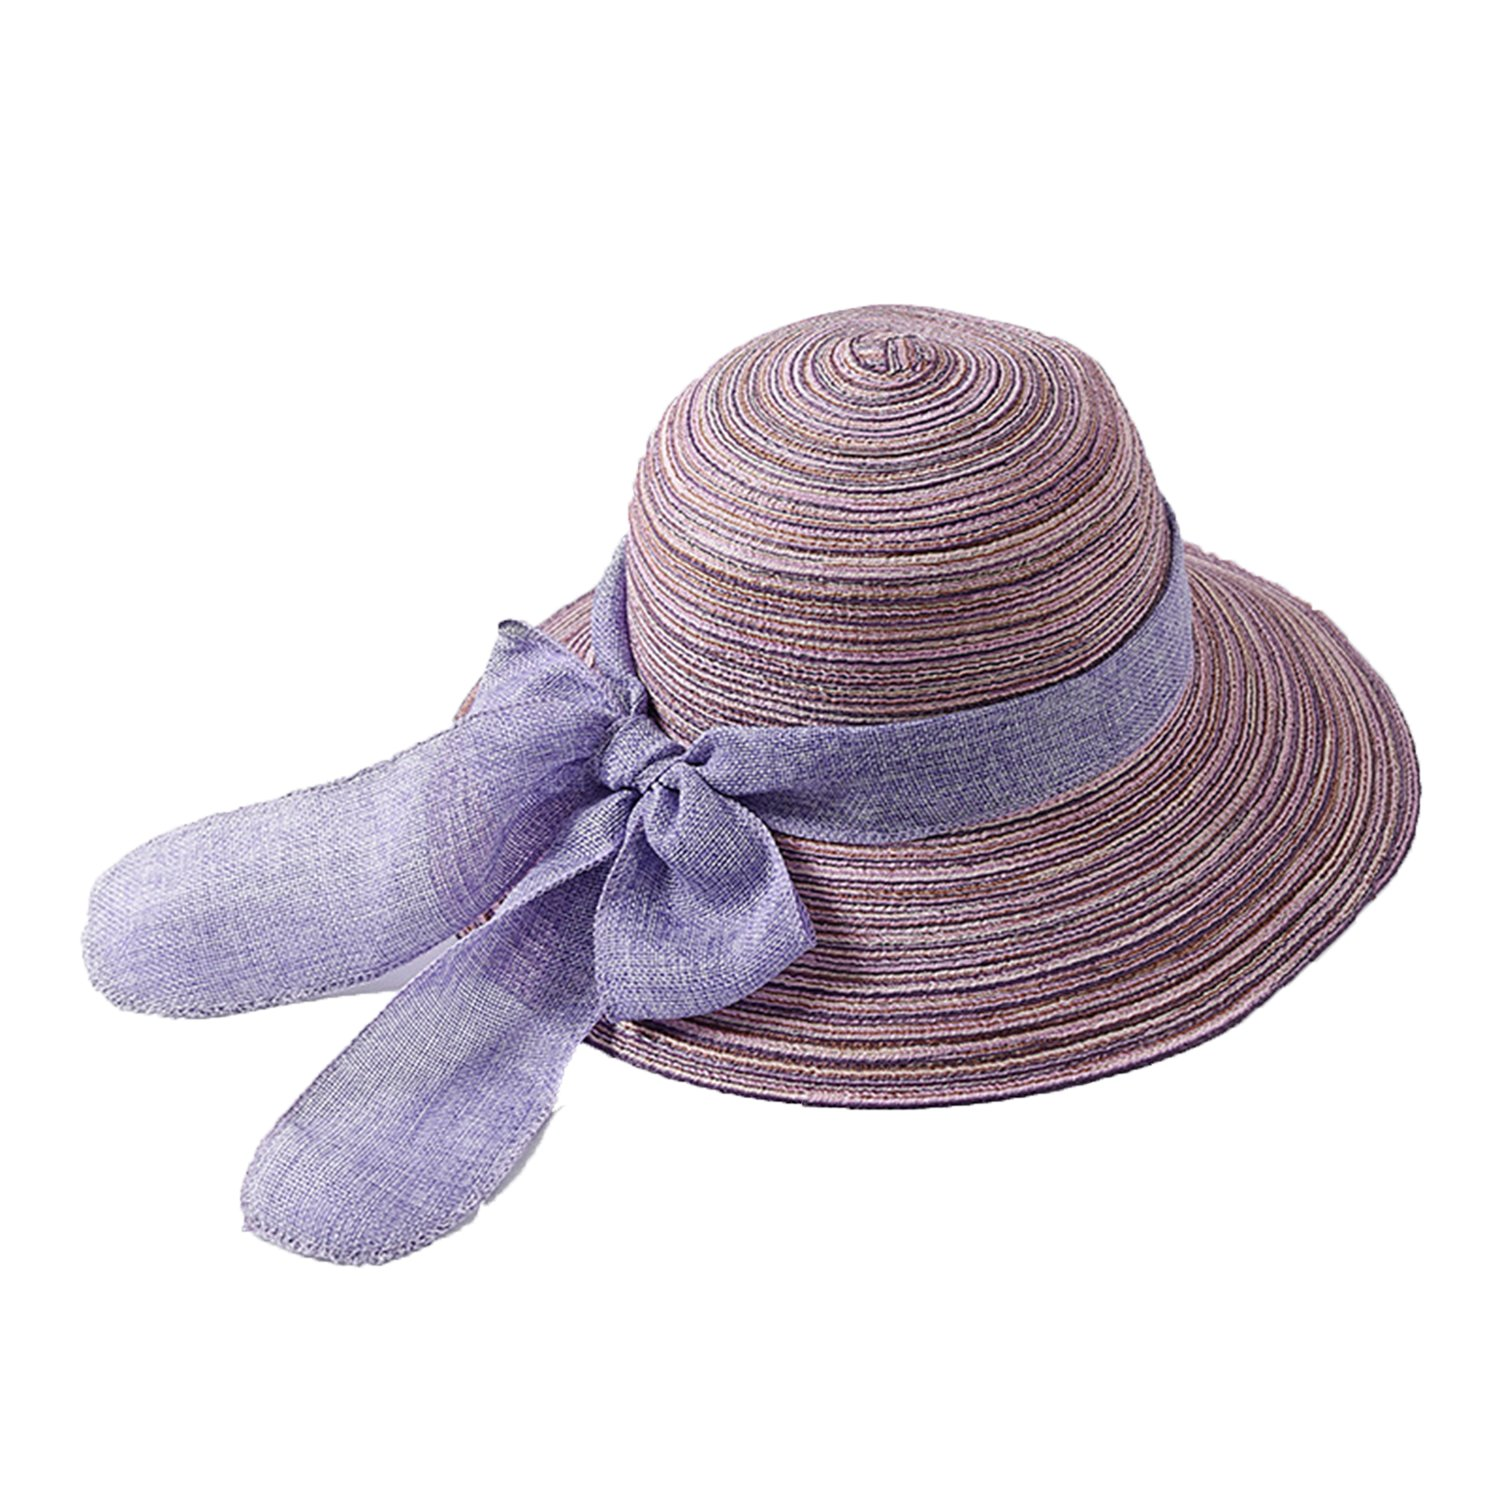 30af078c18427 Summer Beach Sun Straw Hats for Women Ladies Wide Brim Lace Bow Floppy  Packable Travel Bucket Hats UPF 50+ Crushable UV Fishing Hat Fedora Cap  Foldable Sun ...